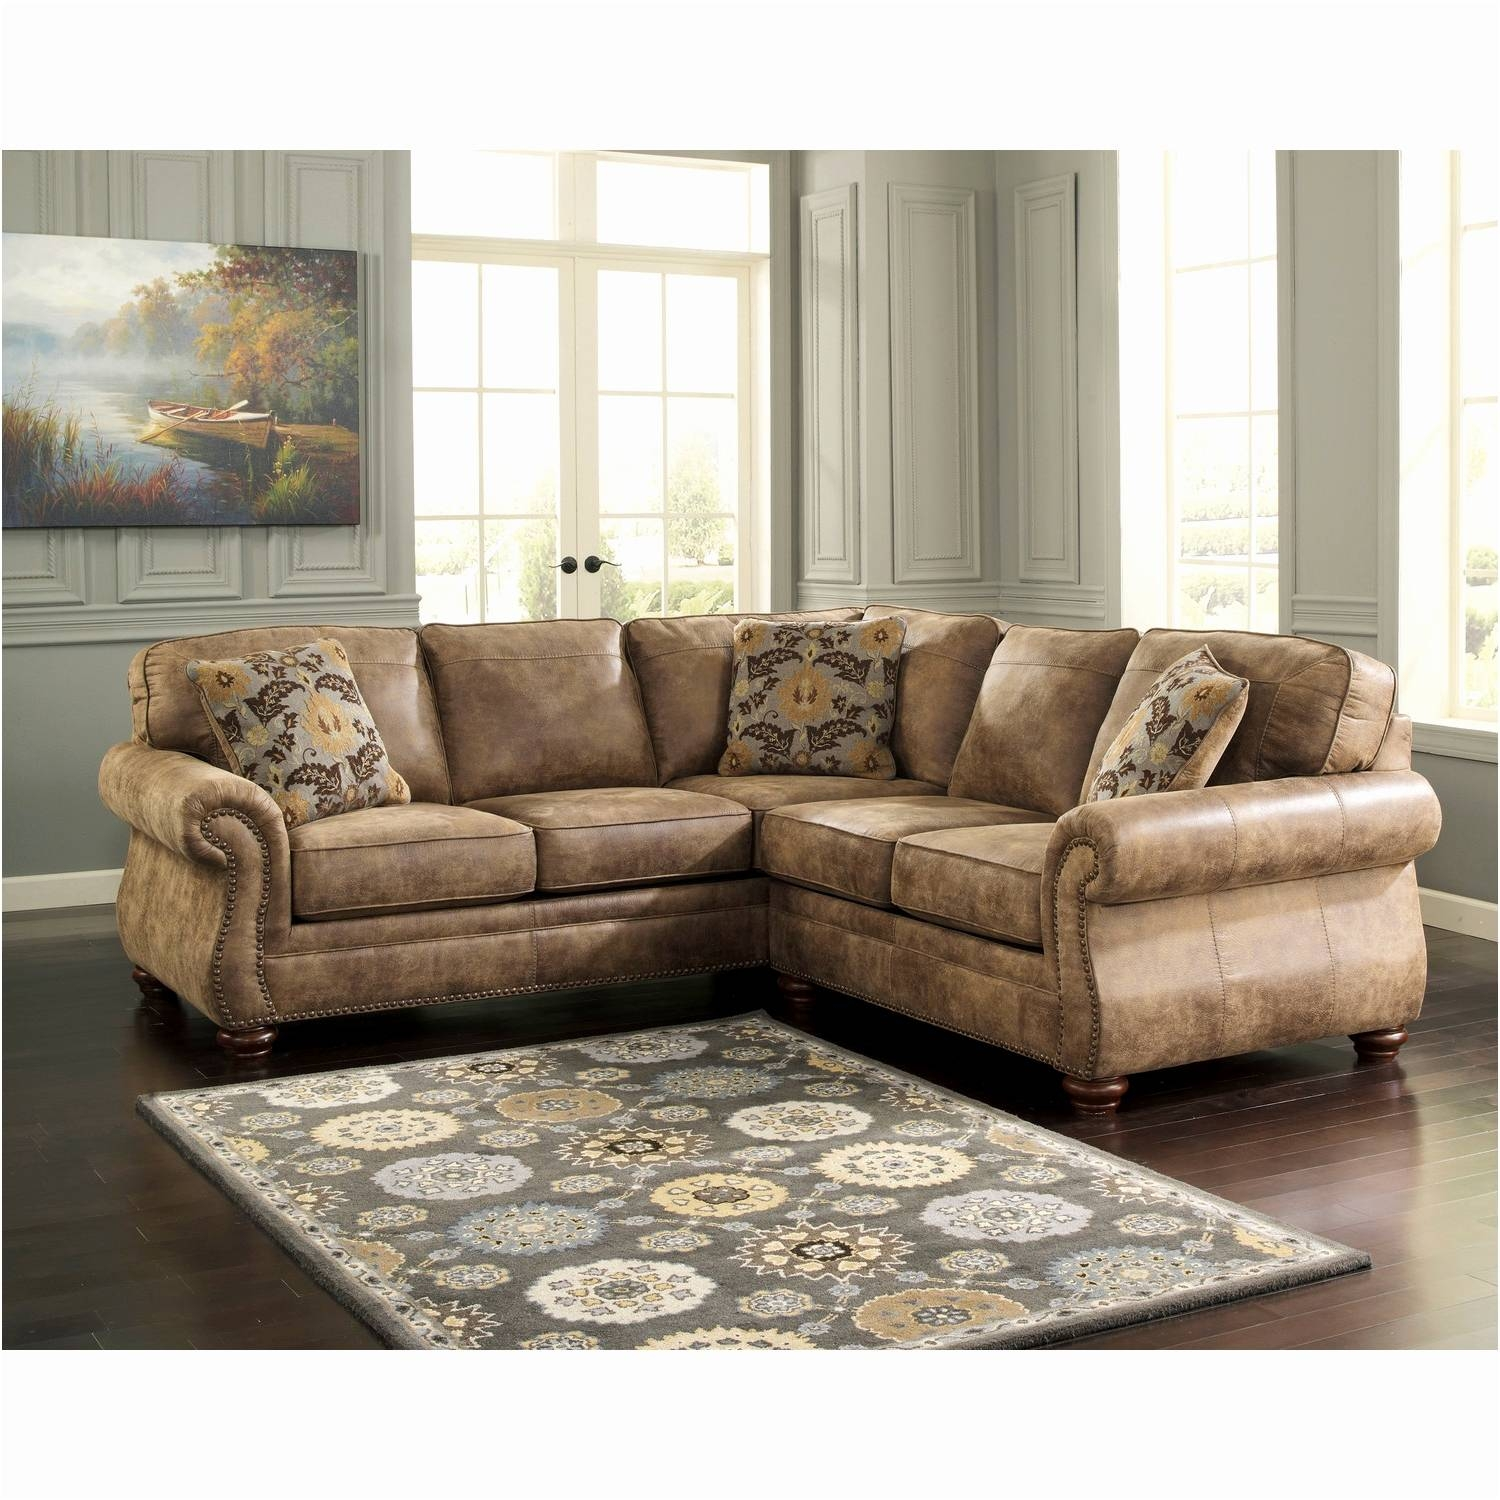 Inspirational High Quality Sectional Sofa New - Sofa Furnitures inside Small Scale Sectional Sofas (Image 6 of 15)